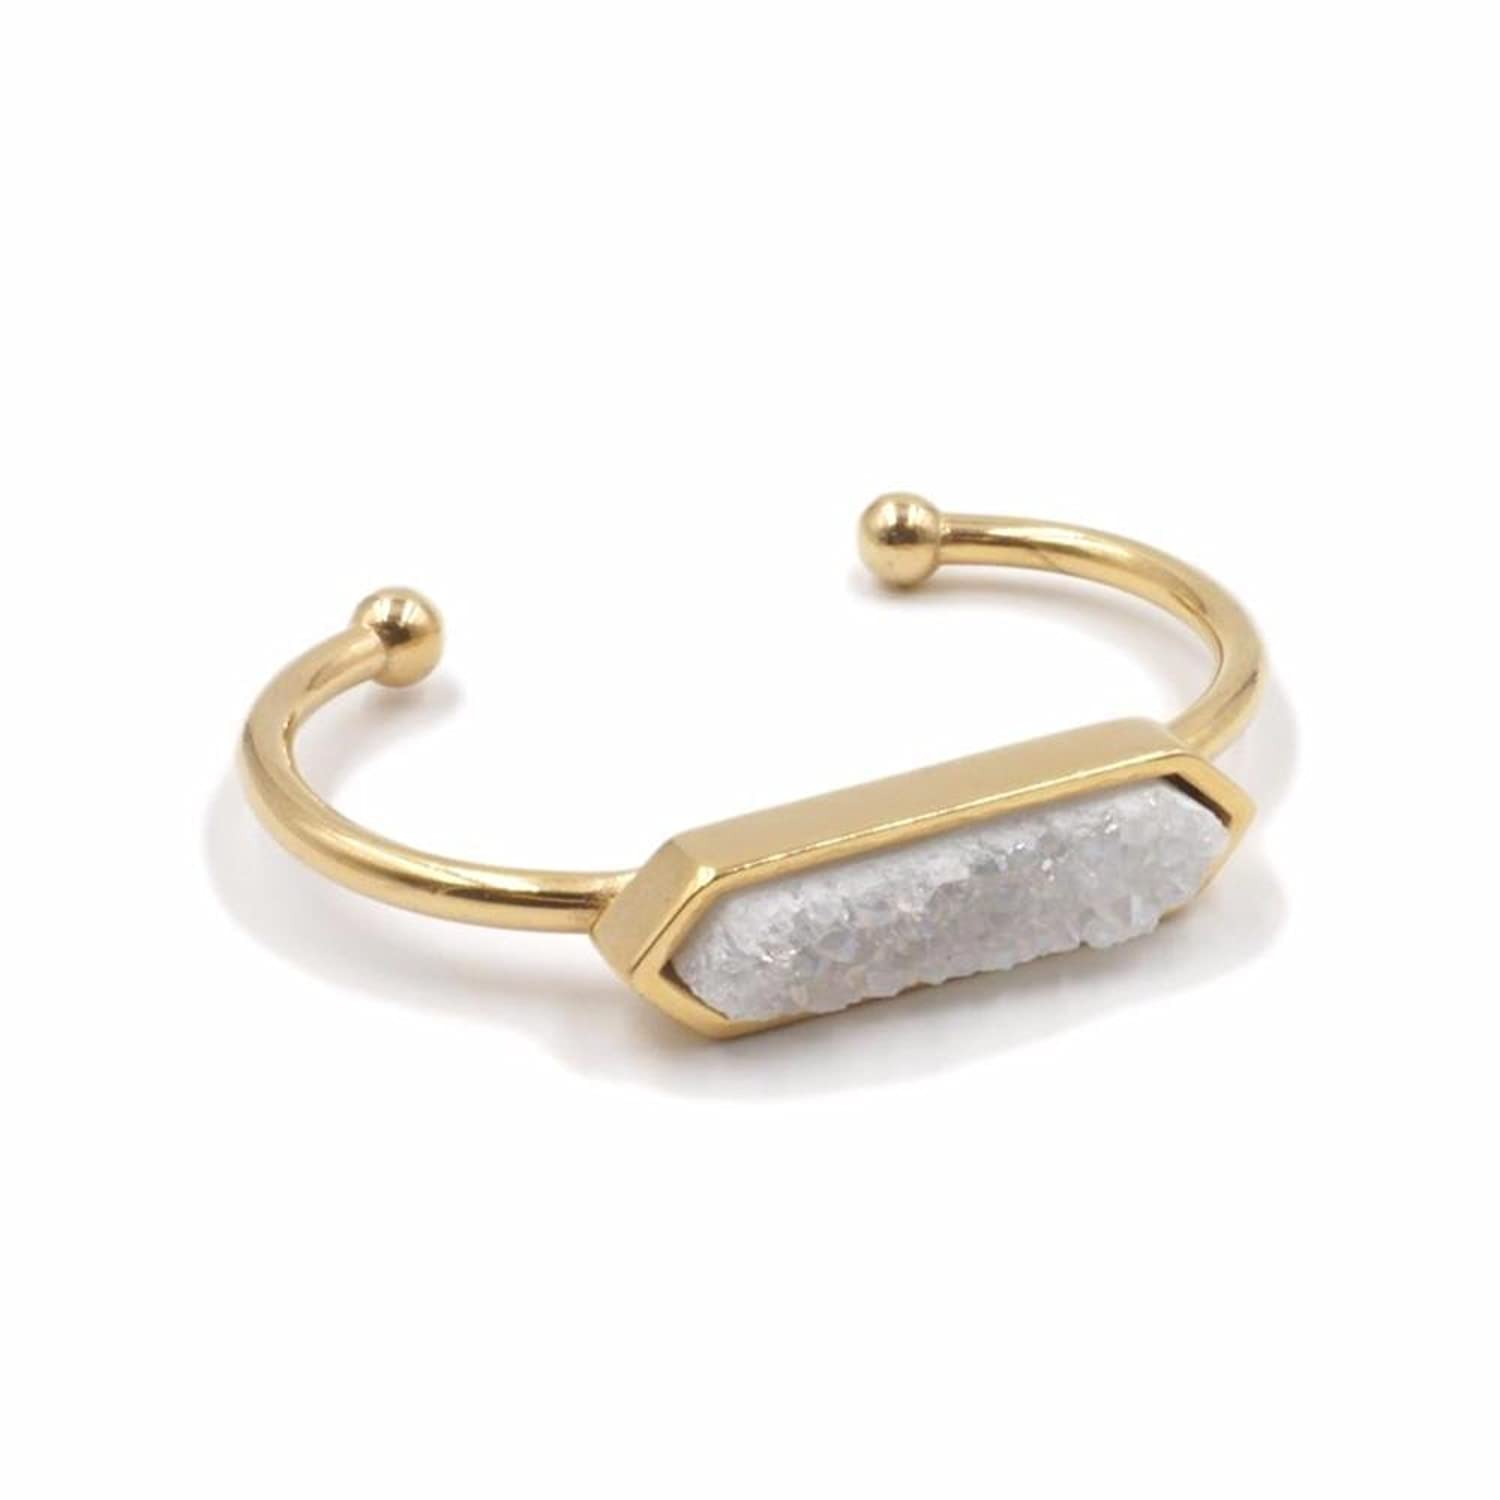 Kinsley Armelle Bangle Collection - Quartz Bracelet